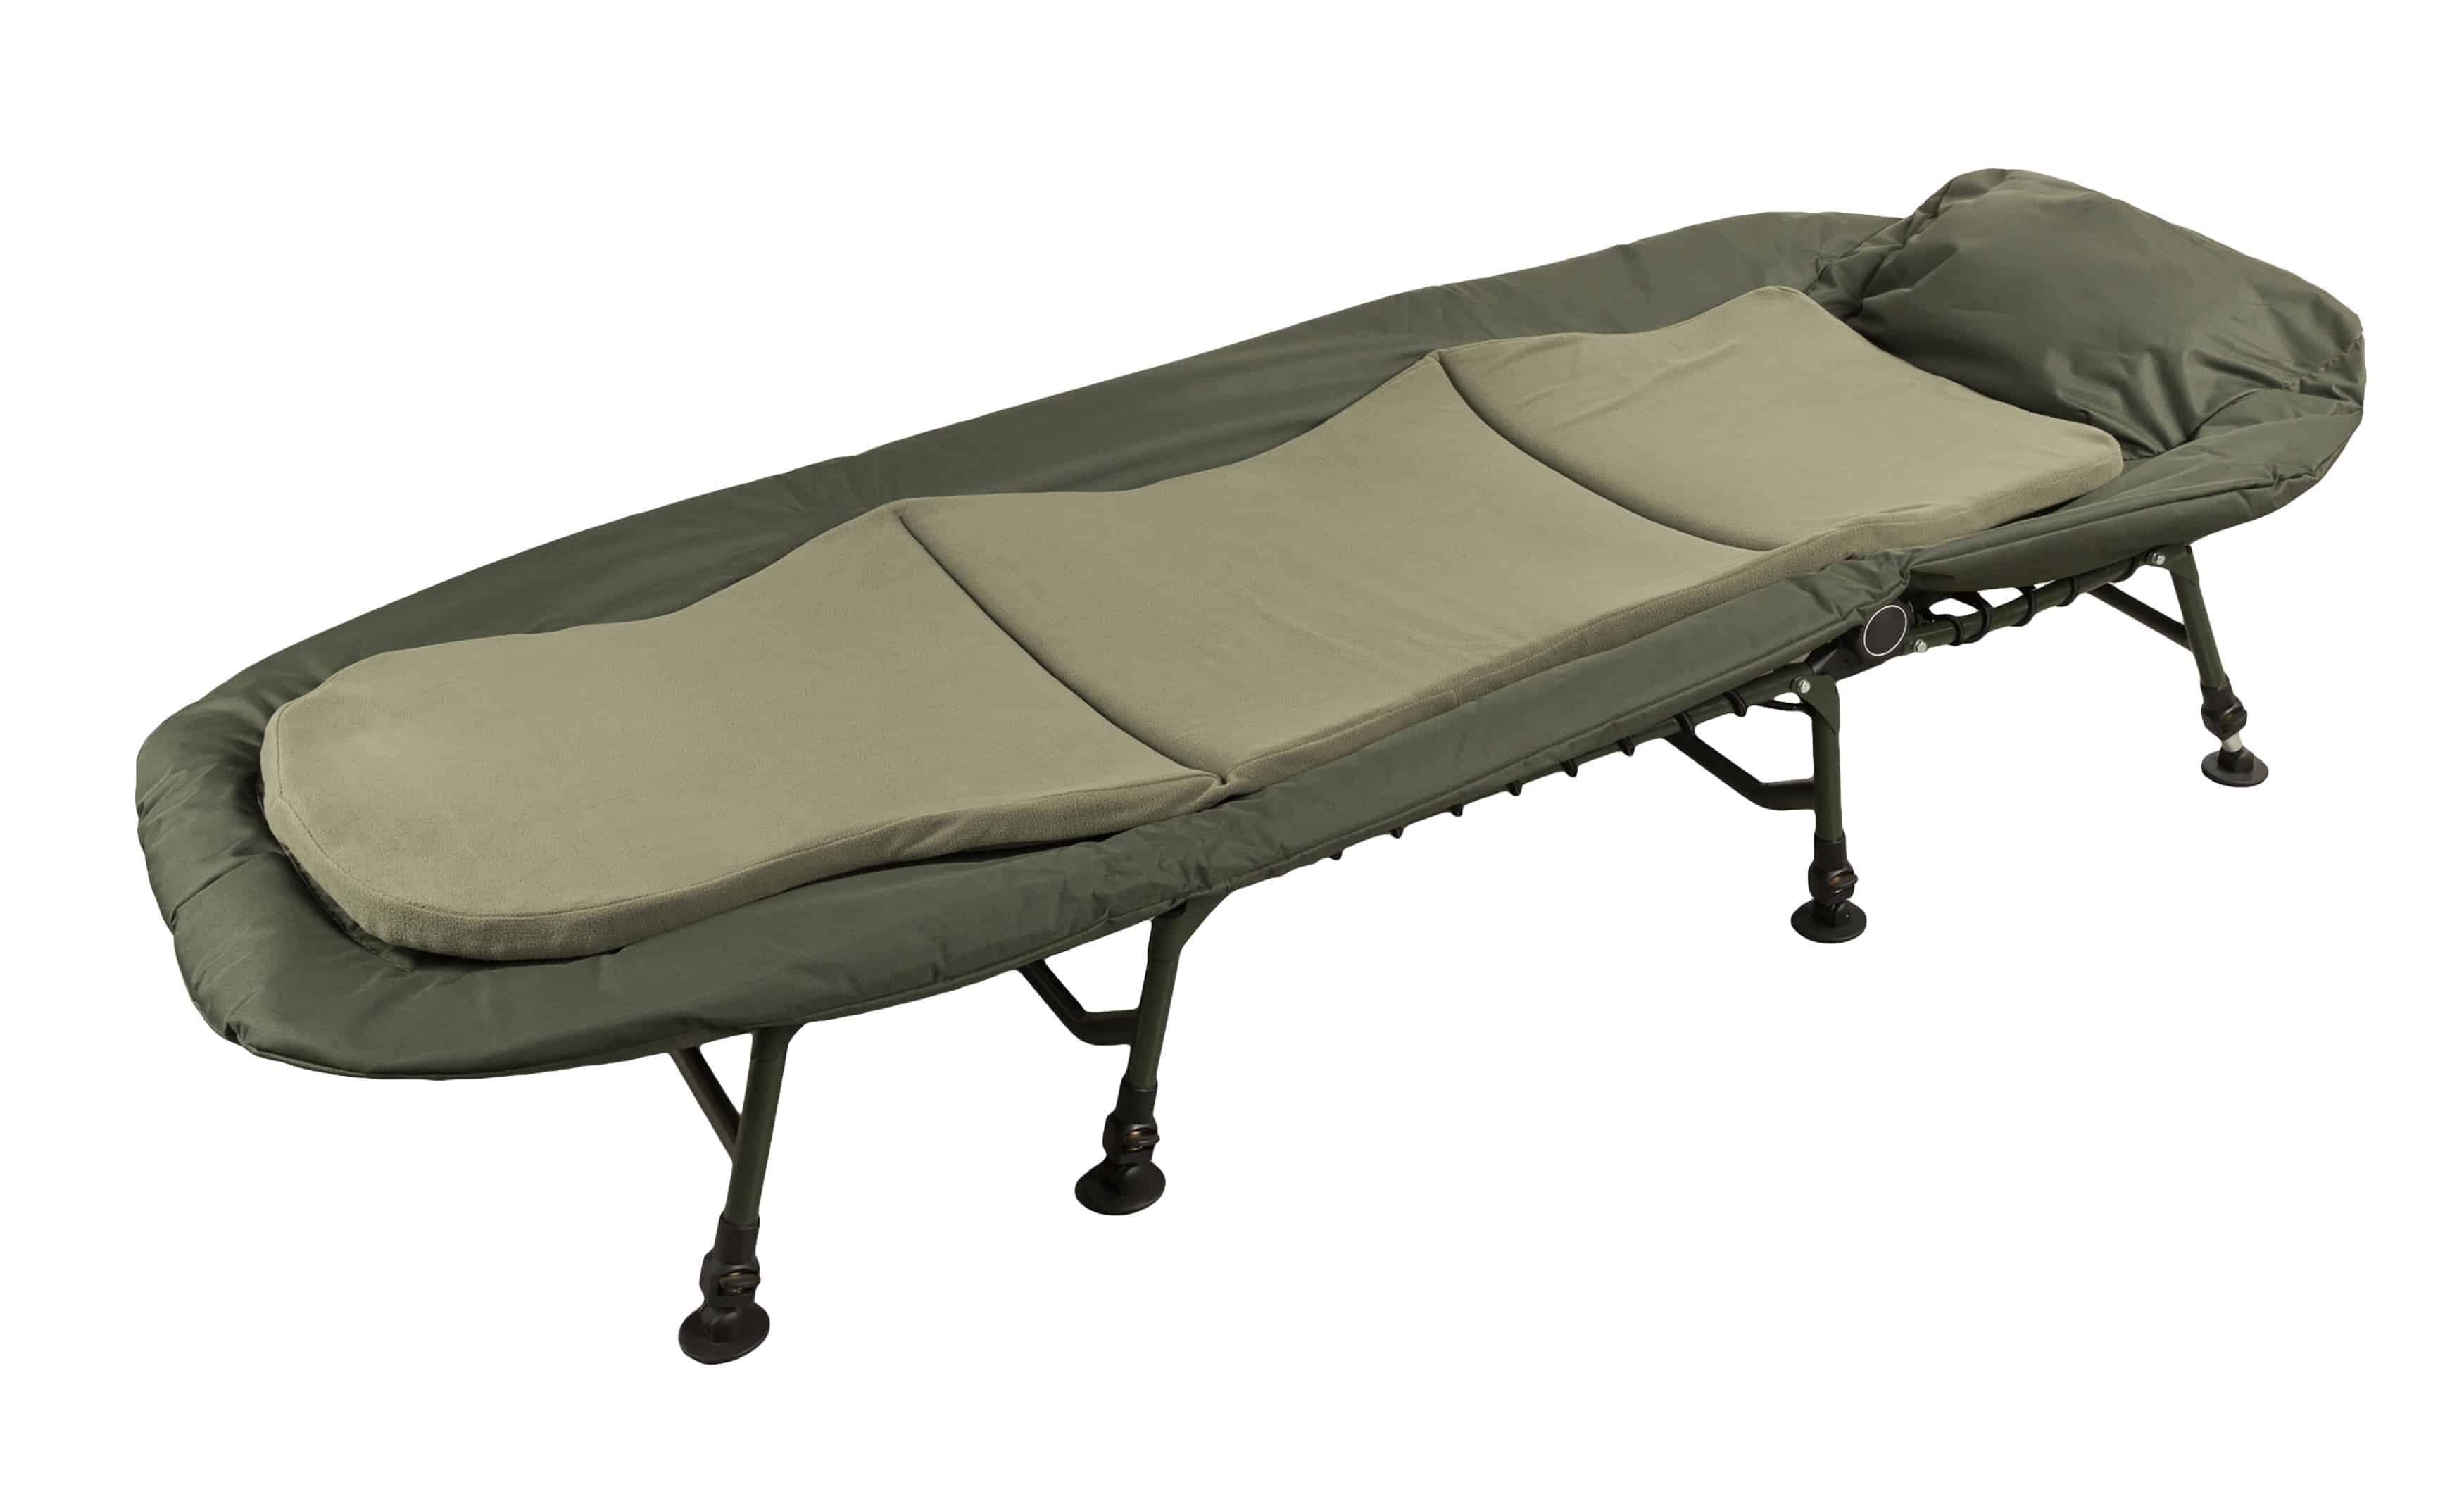 Best Camping Bed >> What Is The Best Camping Cot For The Money In 2019